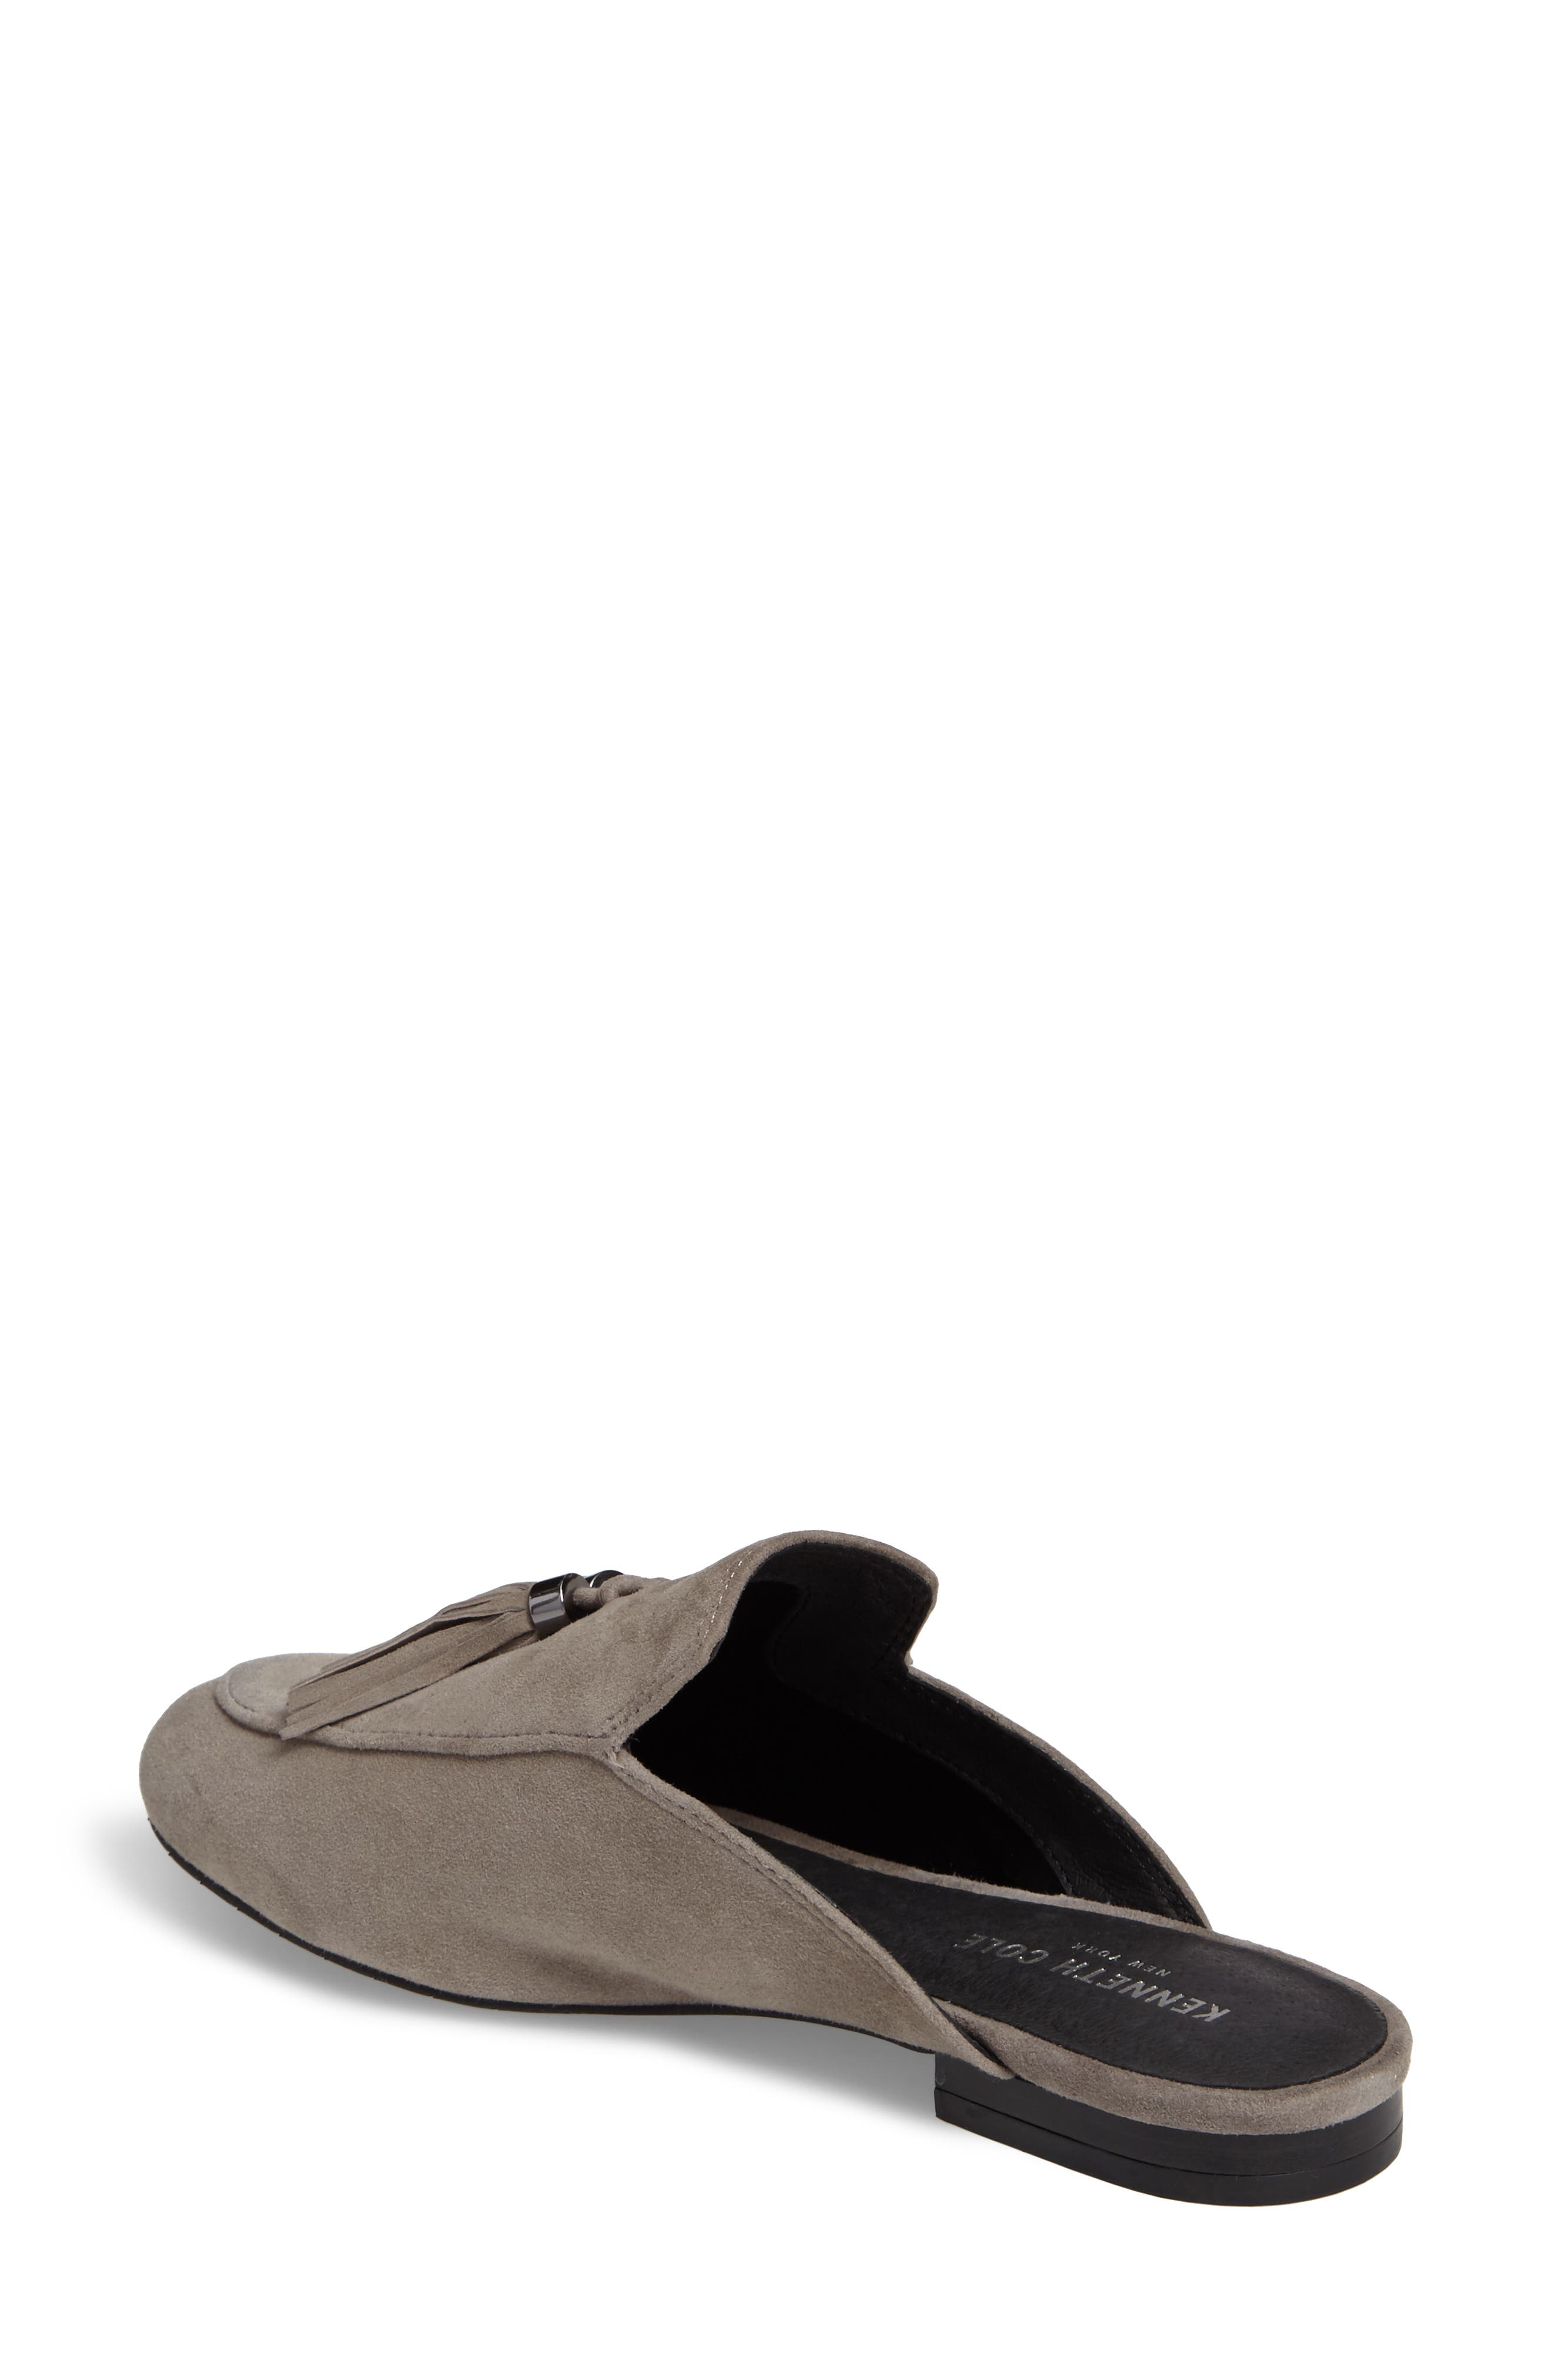 Whinnie Loafer Mule,                             Alternate thumbnail 2, color,                             090